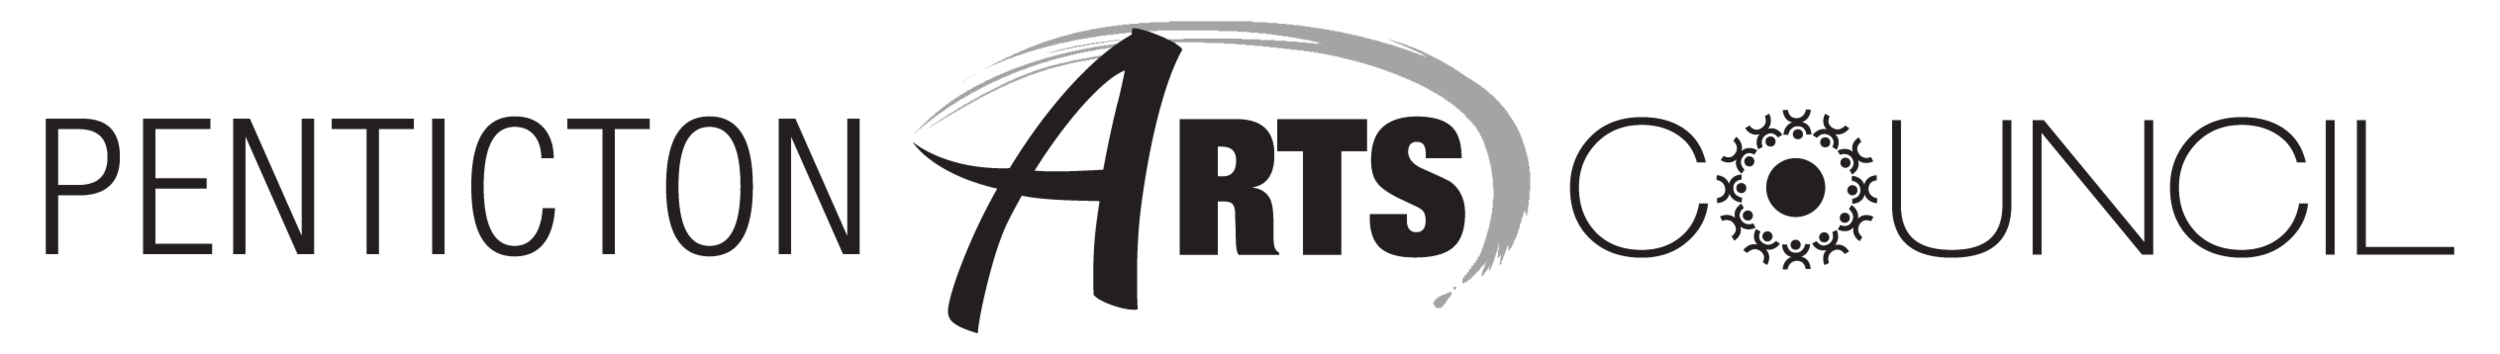 Penticton Arts Council logo (horizontal)black.png